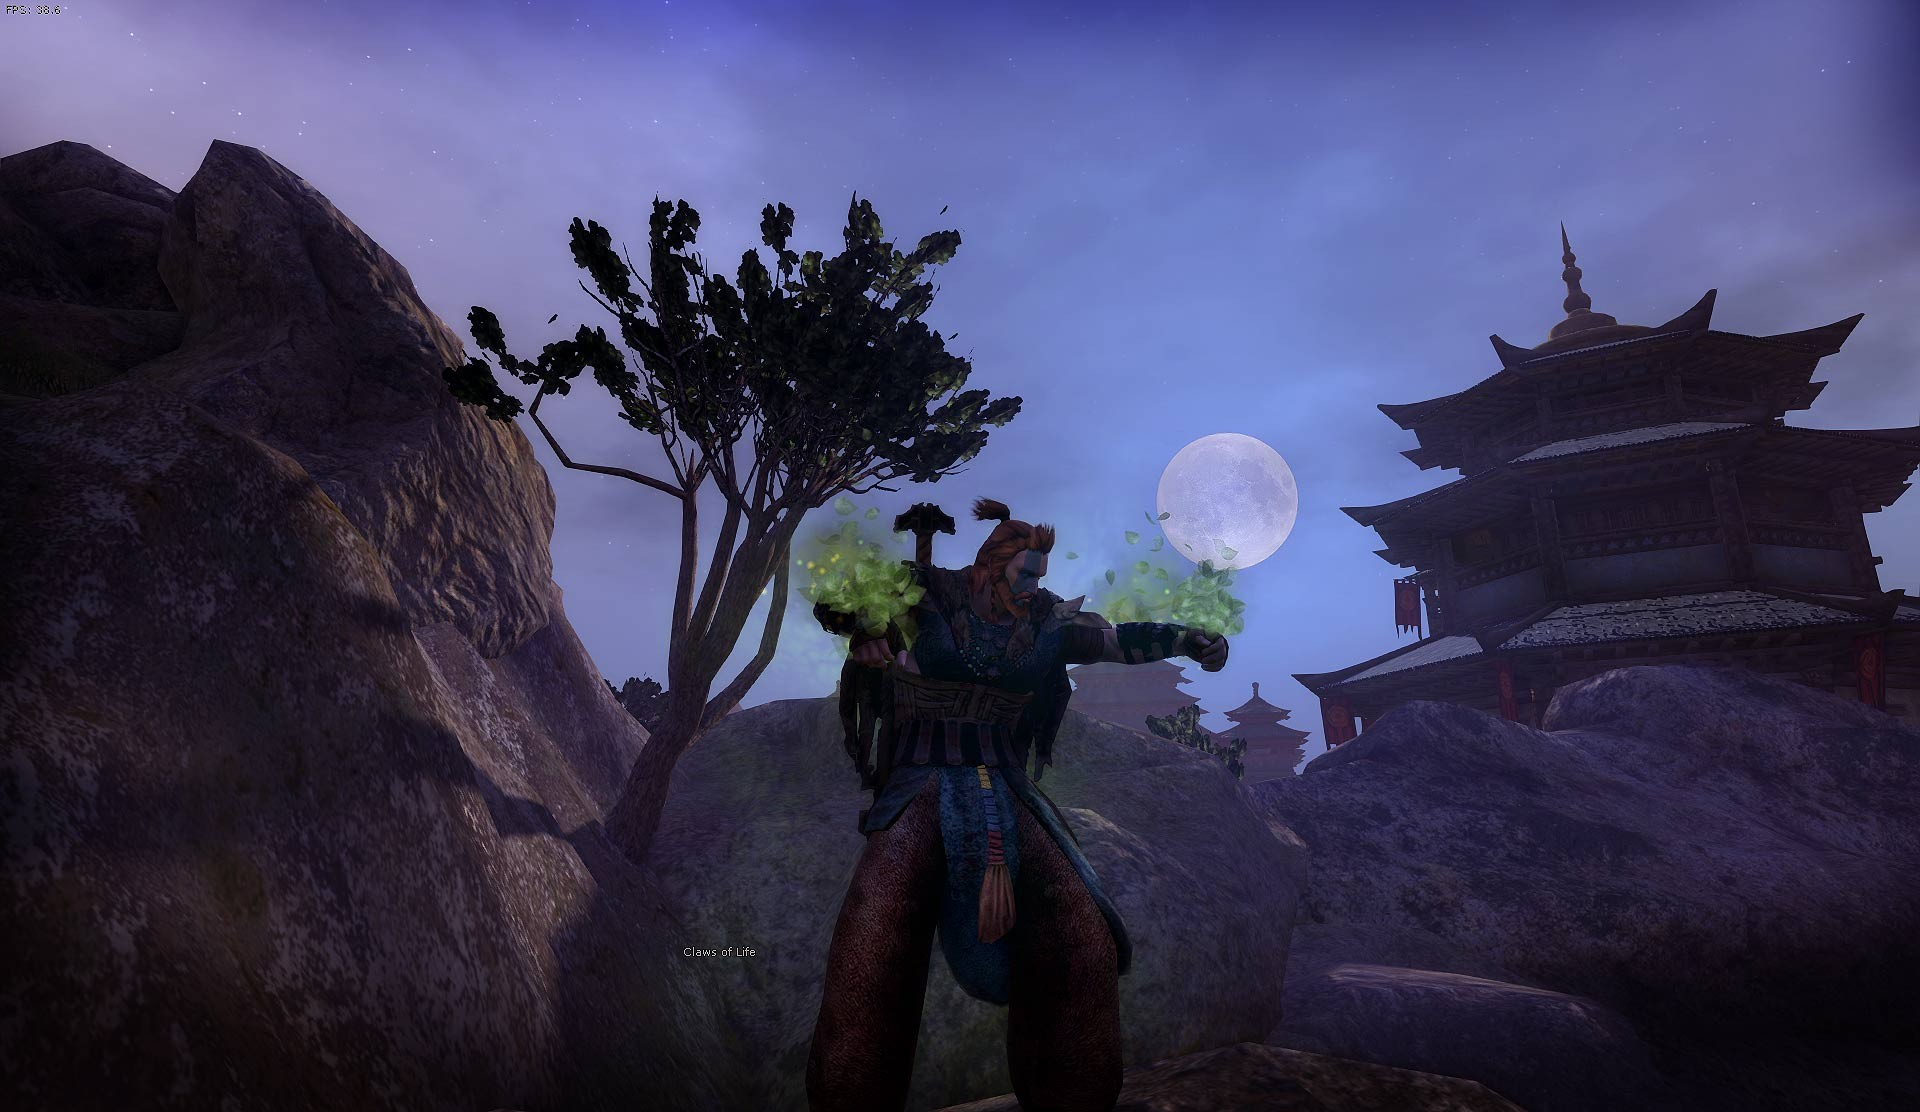 Age of Conan: Unchained - Kang Pagoda by night